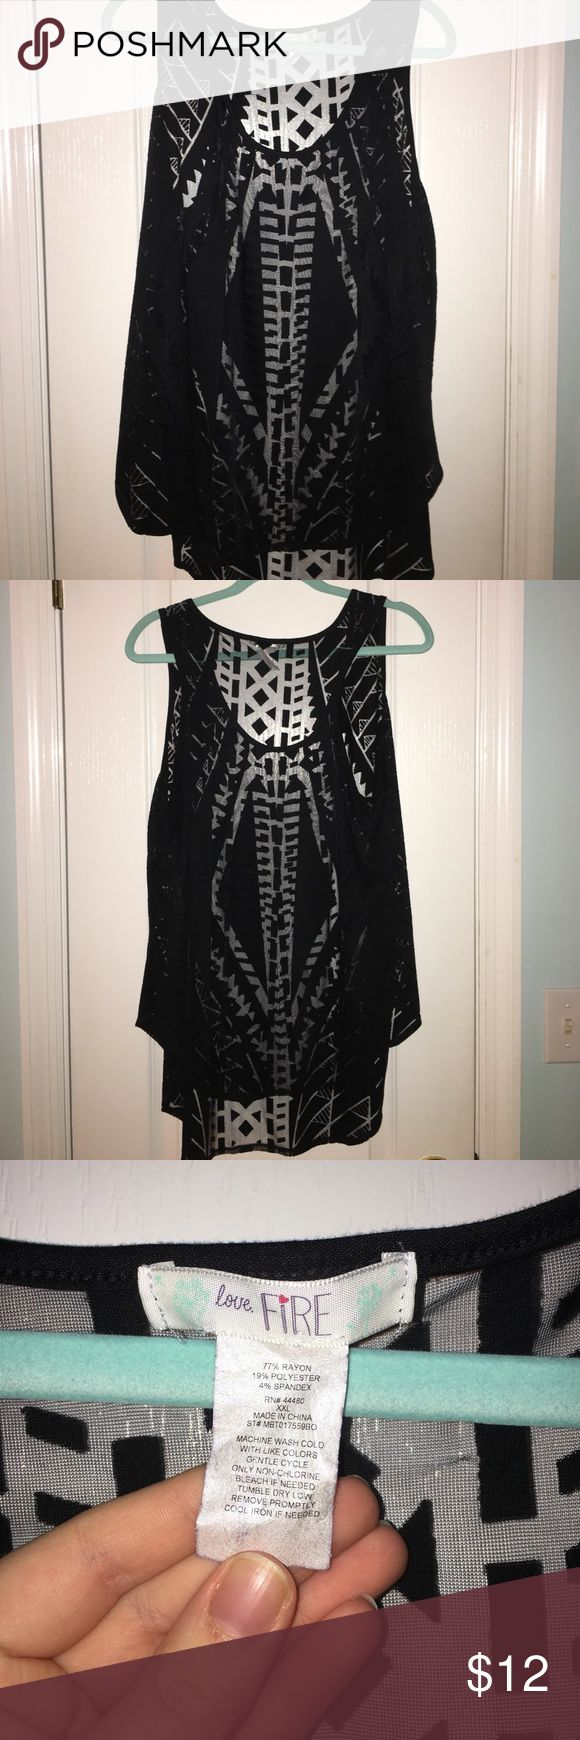 Black see-through tank top Black see-through tank top. Excellent condition. Worn once Love Fire Tops Tank Tops